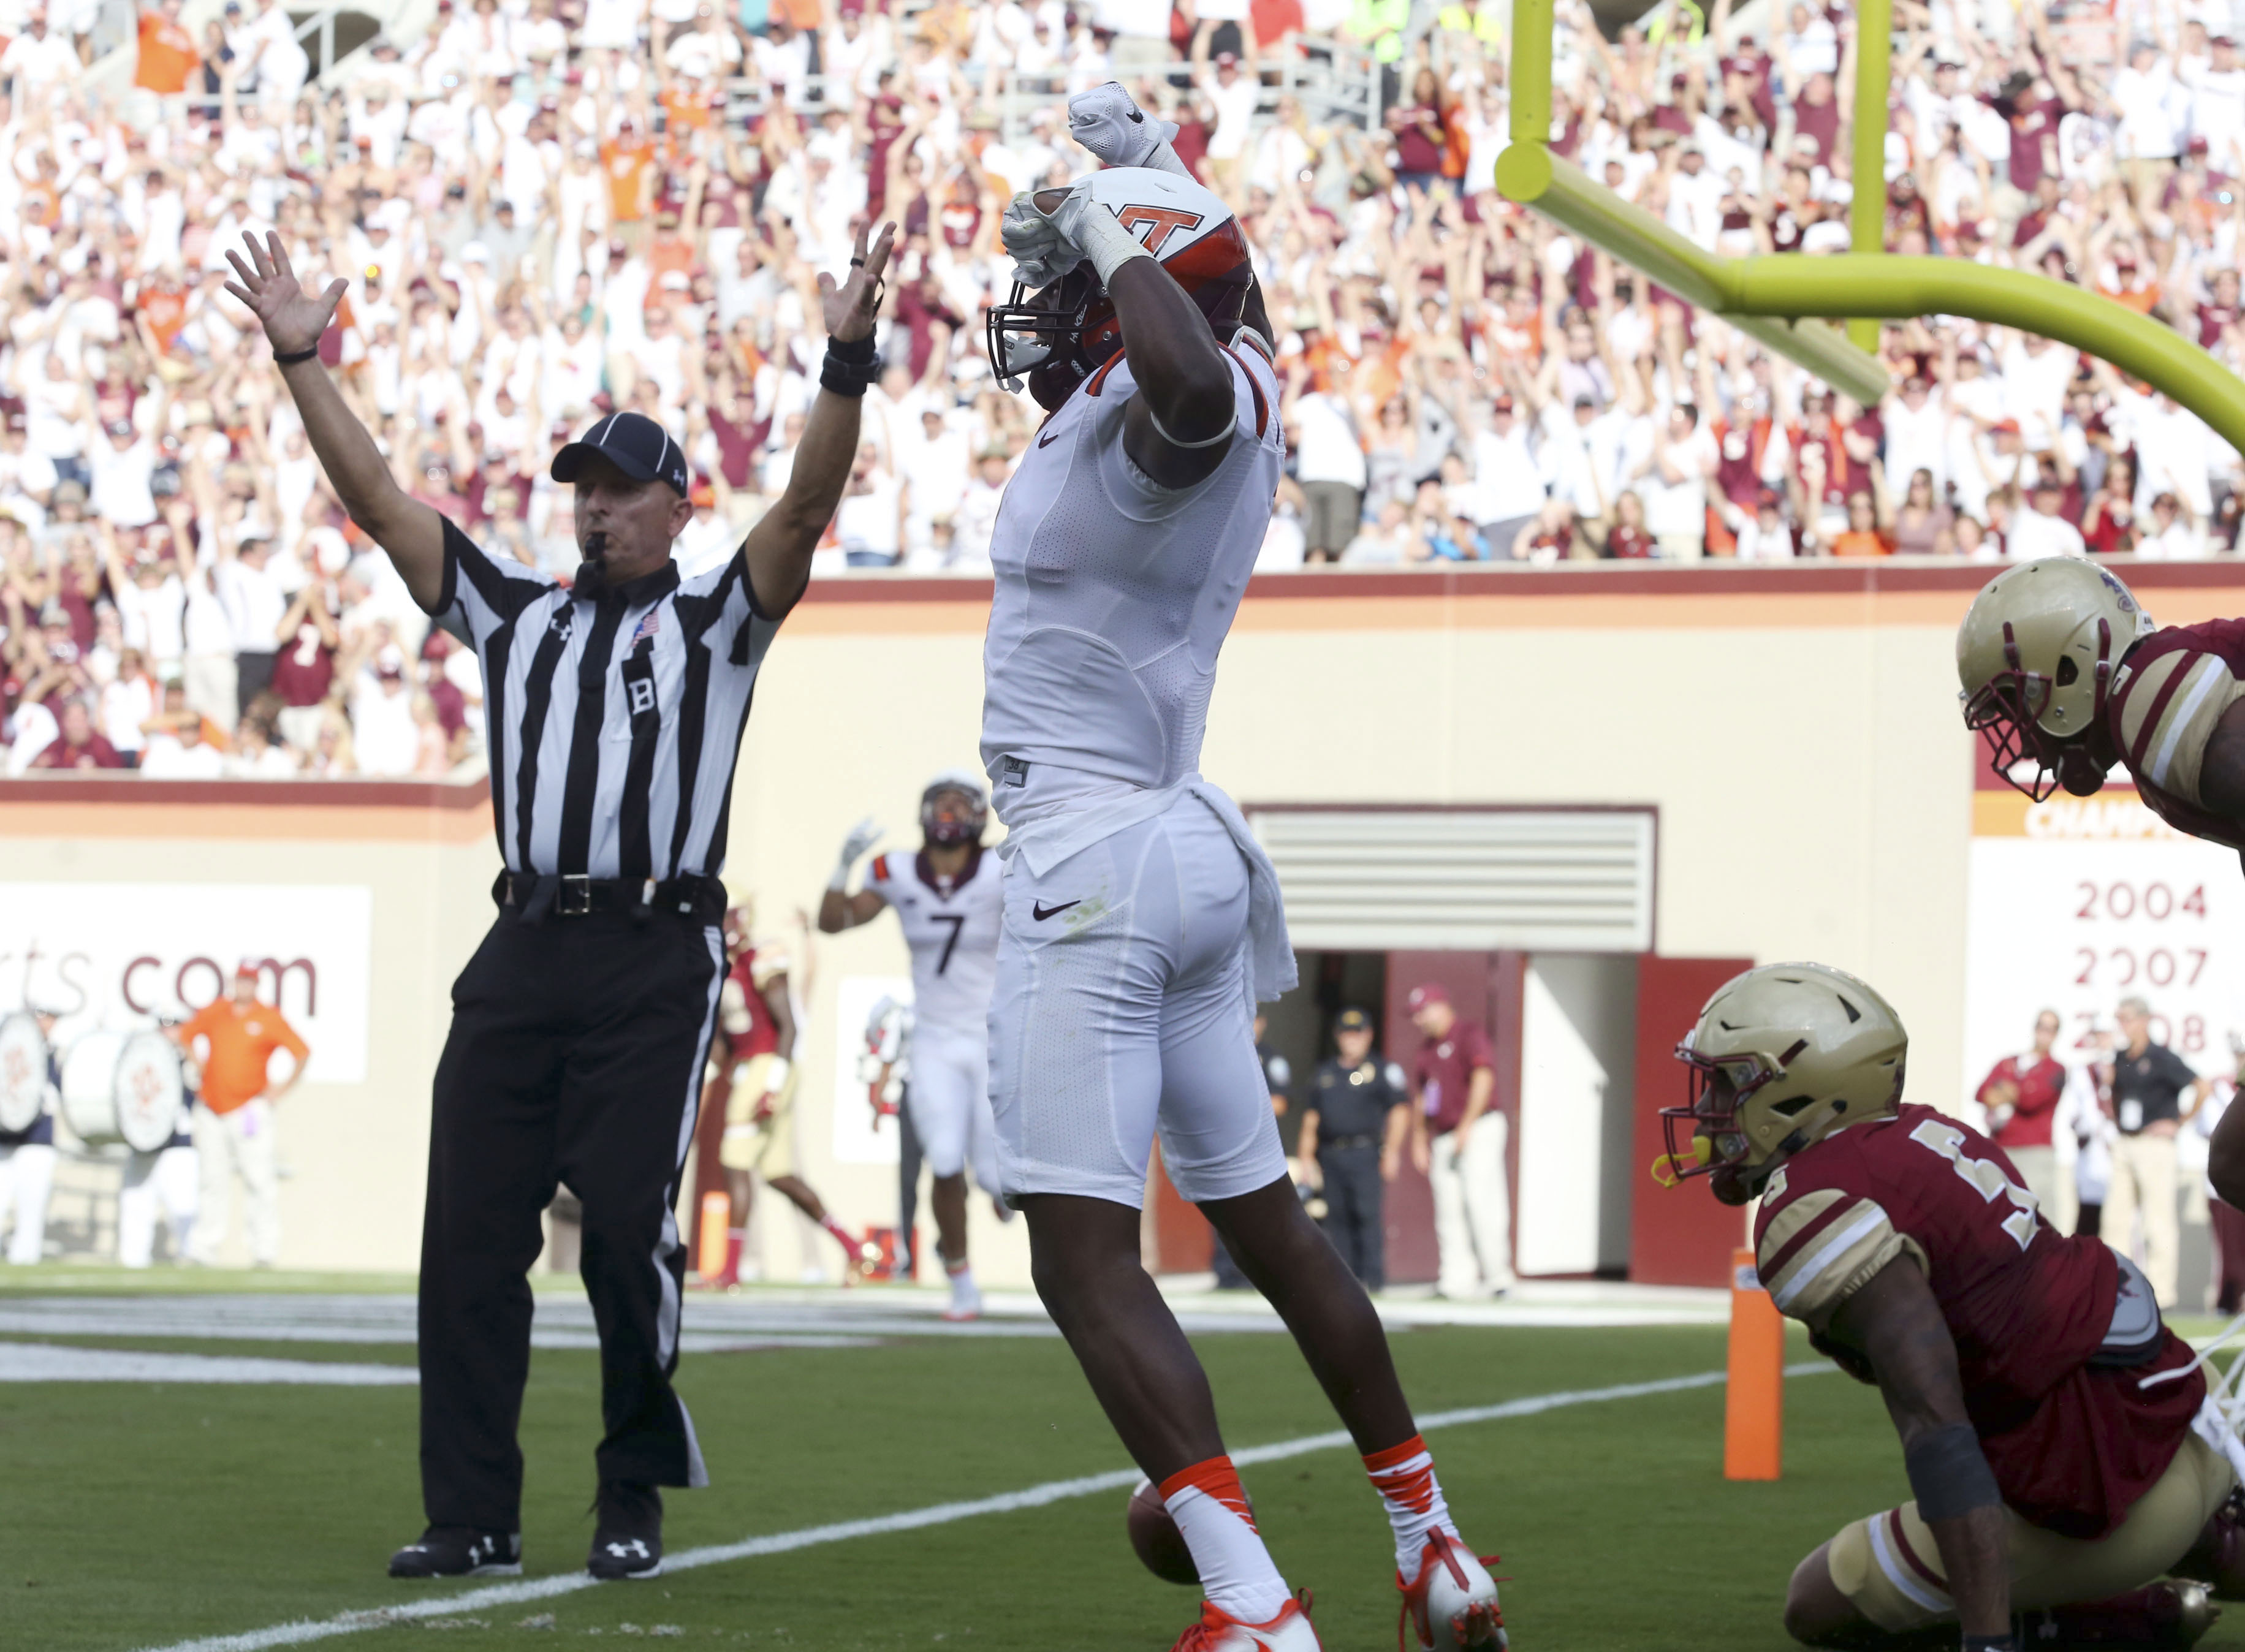 Virginia Tech wide receiver Isaiah Ford (1) celebrates a second quarter touchdown catch from Jerod Evans in an NCAA college football game, in Blacksburg Va. Saturday Sept. 17, 2016. (Matt Gentry/The Roanoke Times via AP)